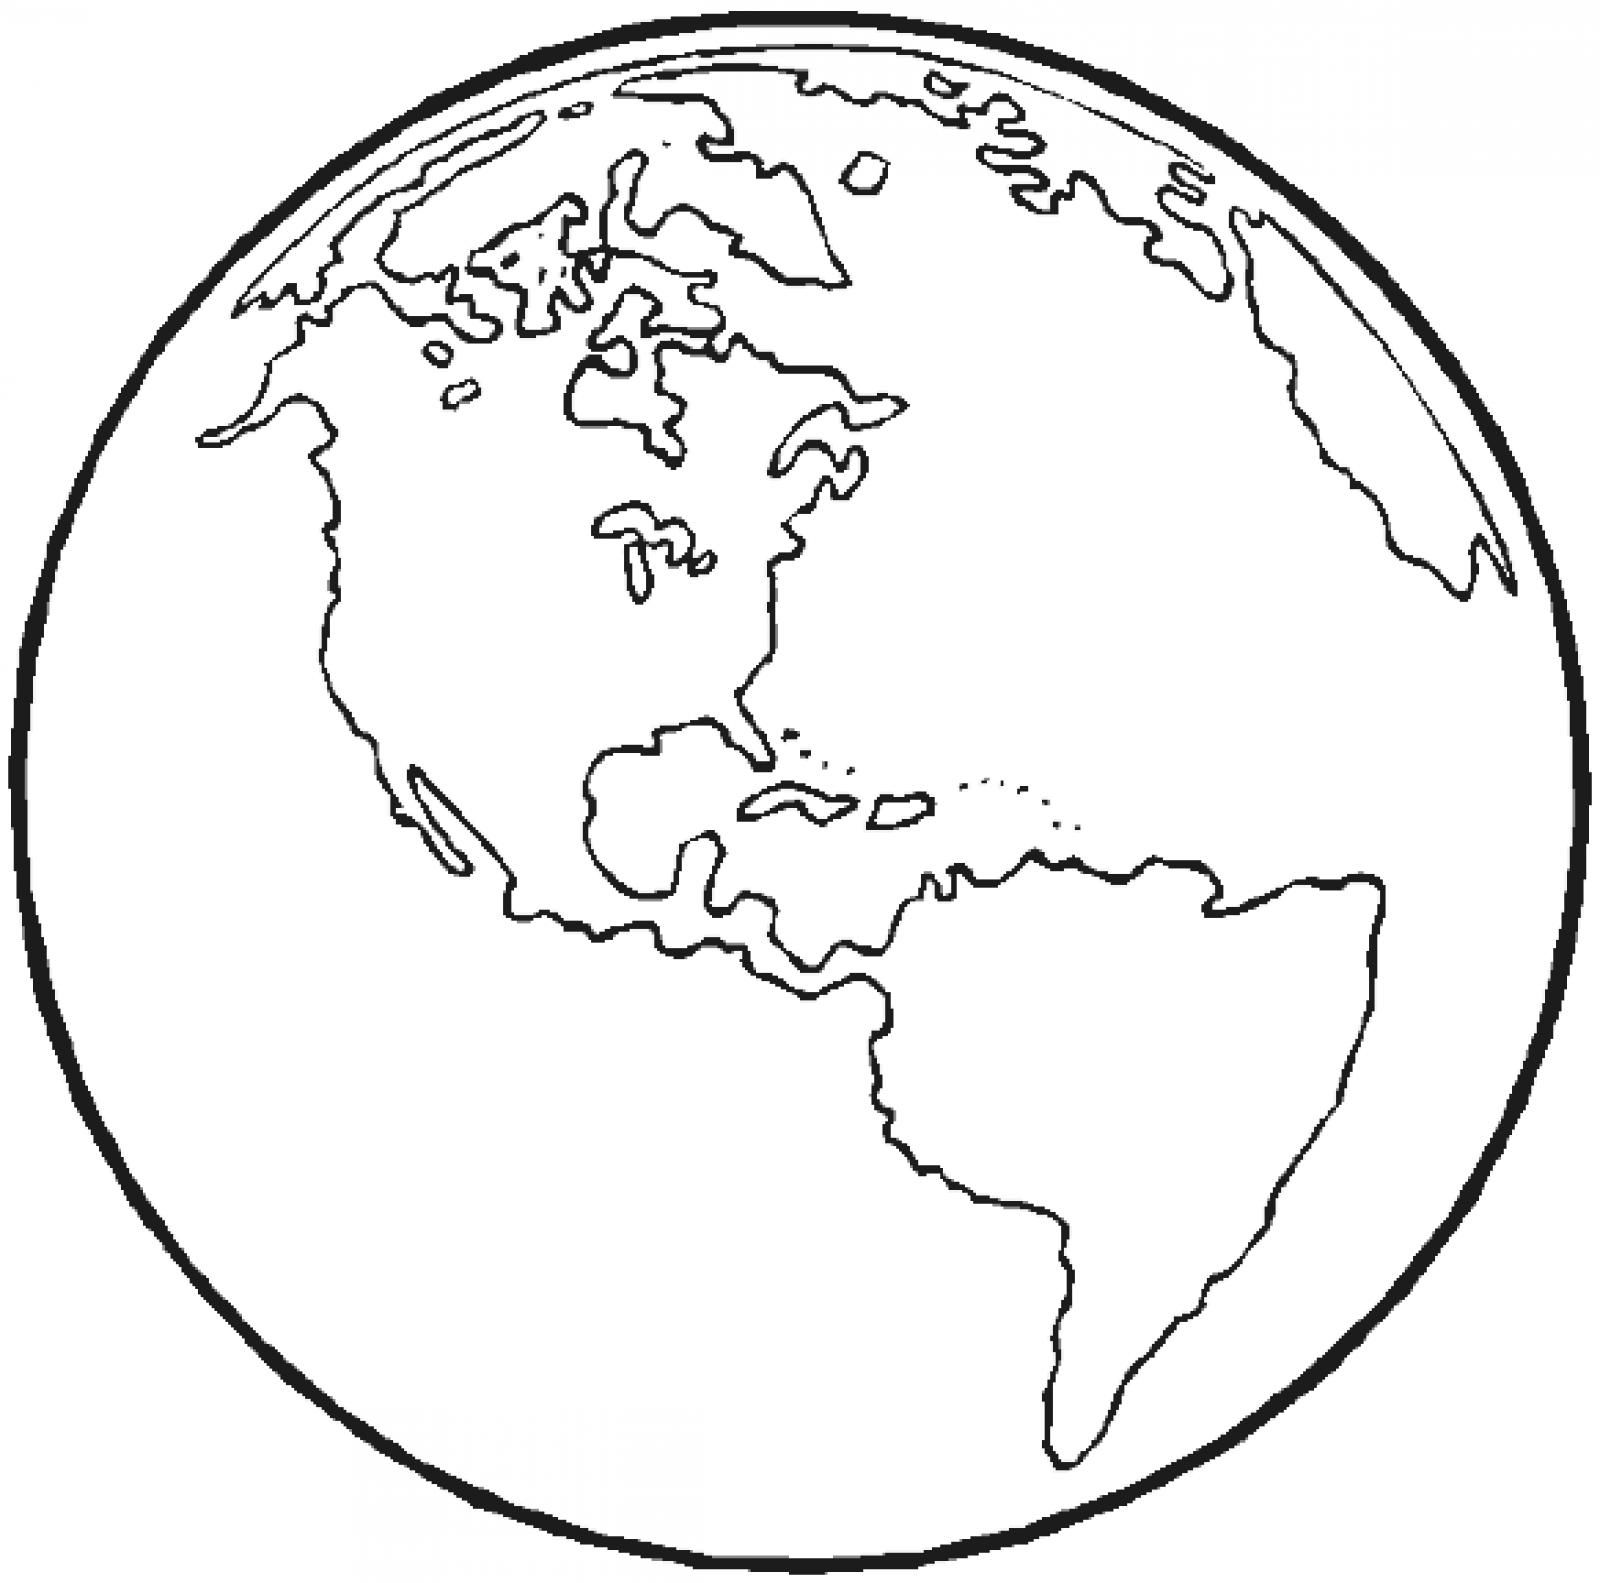 The Earth Coloring Page Earth Coloring Pages Planet Coloring Pages Space Coloring Pages